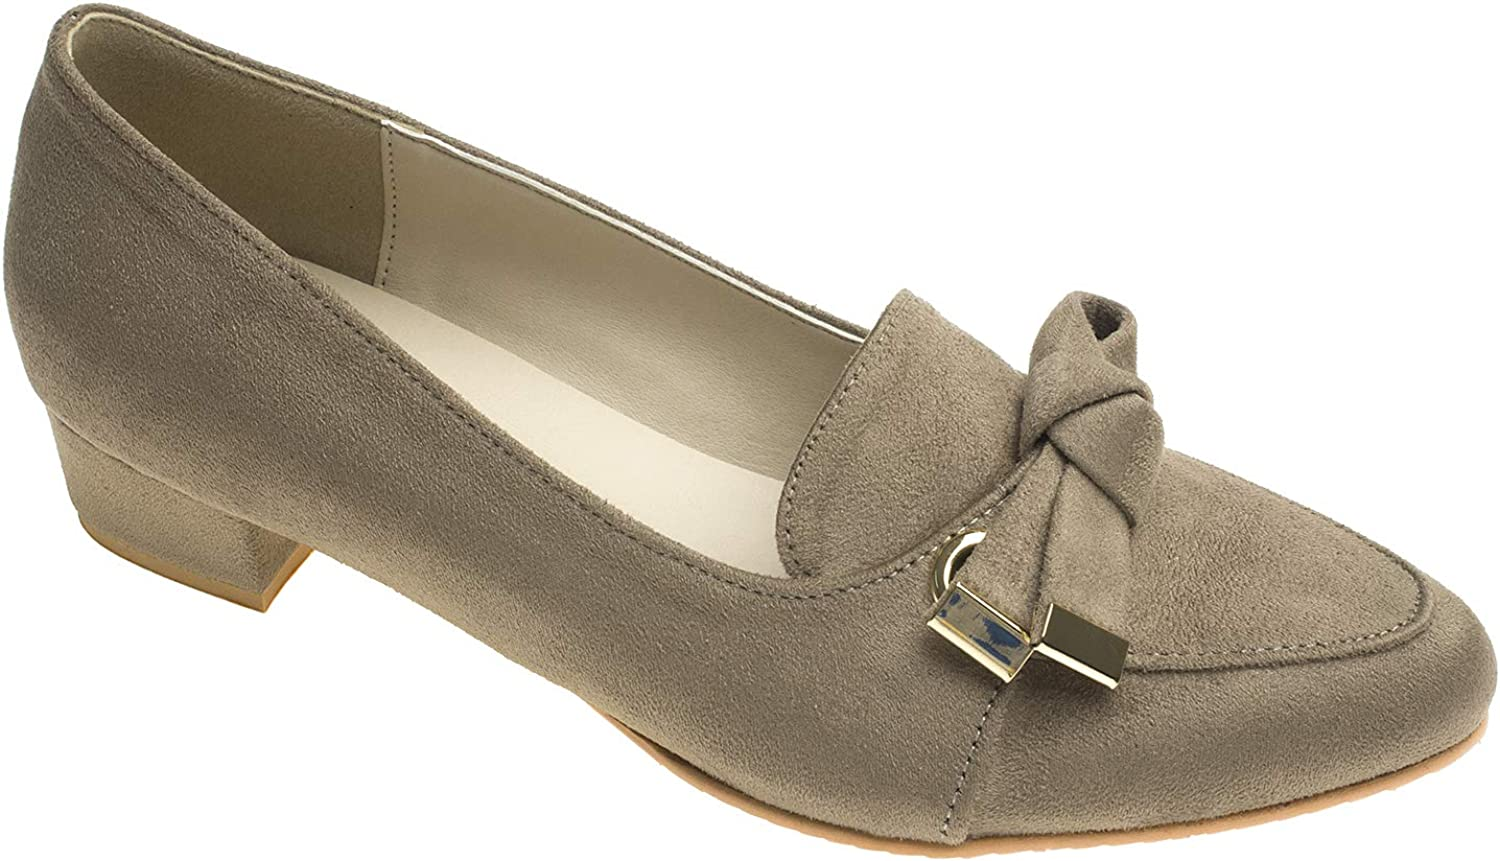 AnnaKastle Womens Vegan Suede Pointed Toe Bow Knot Slip On Loafers